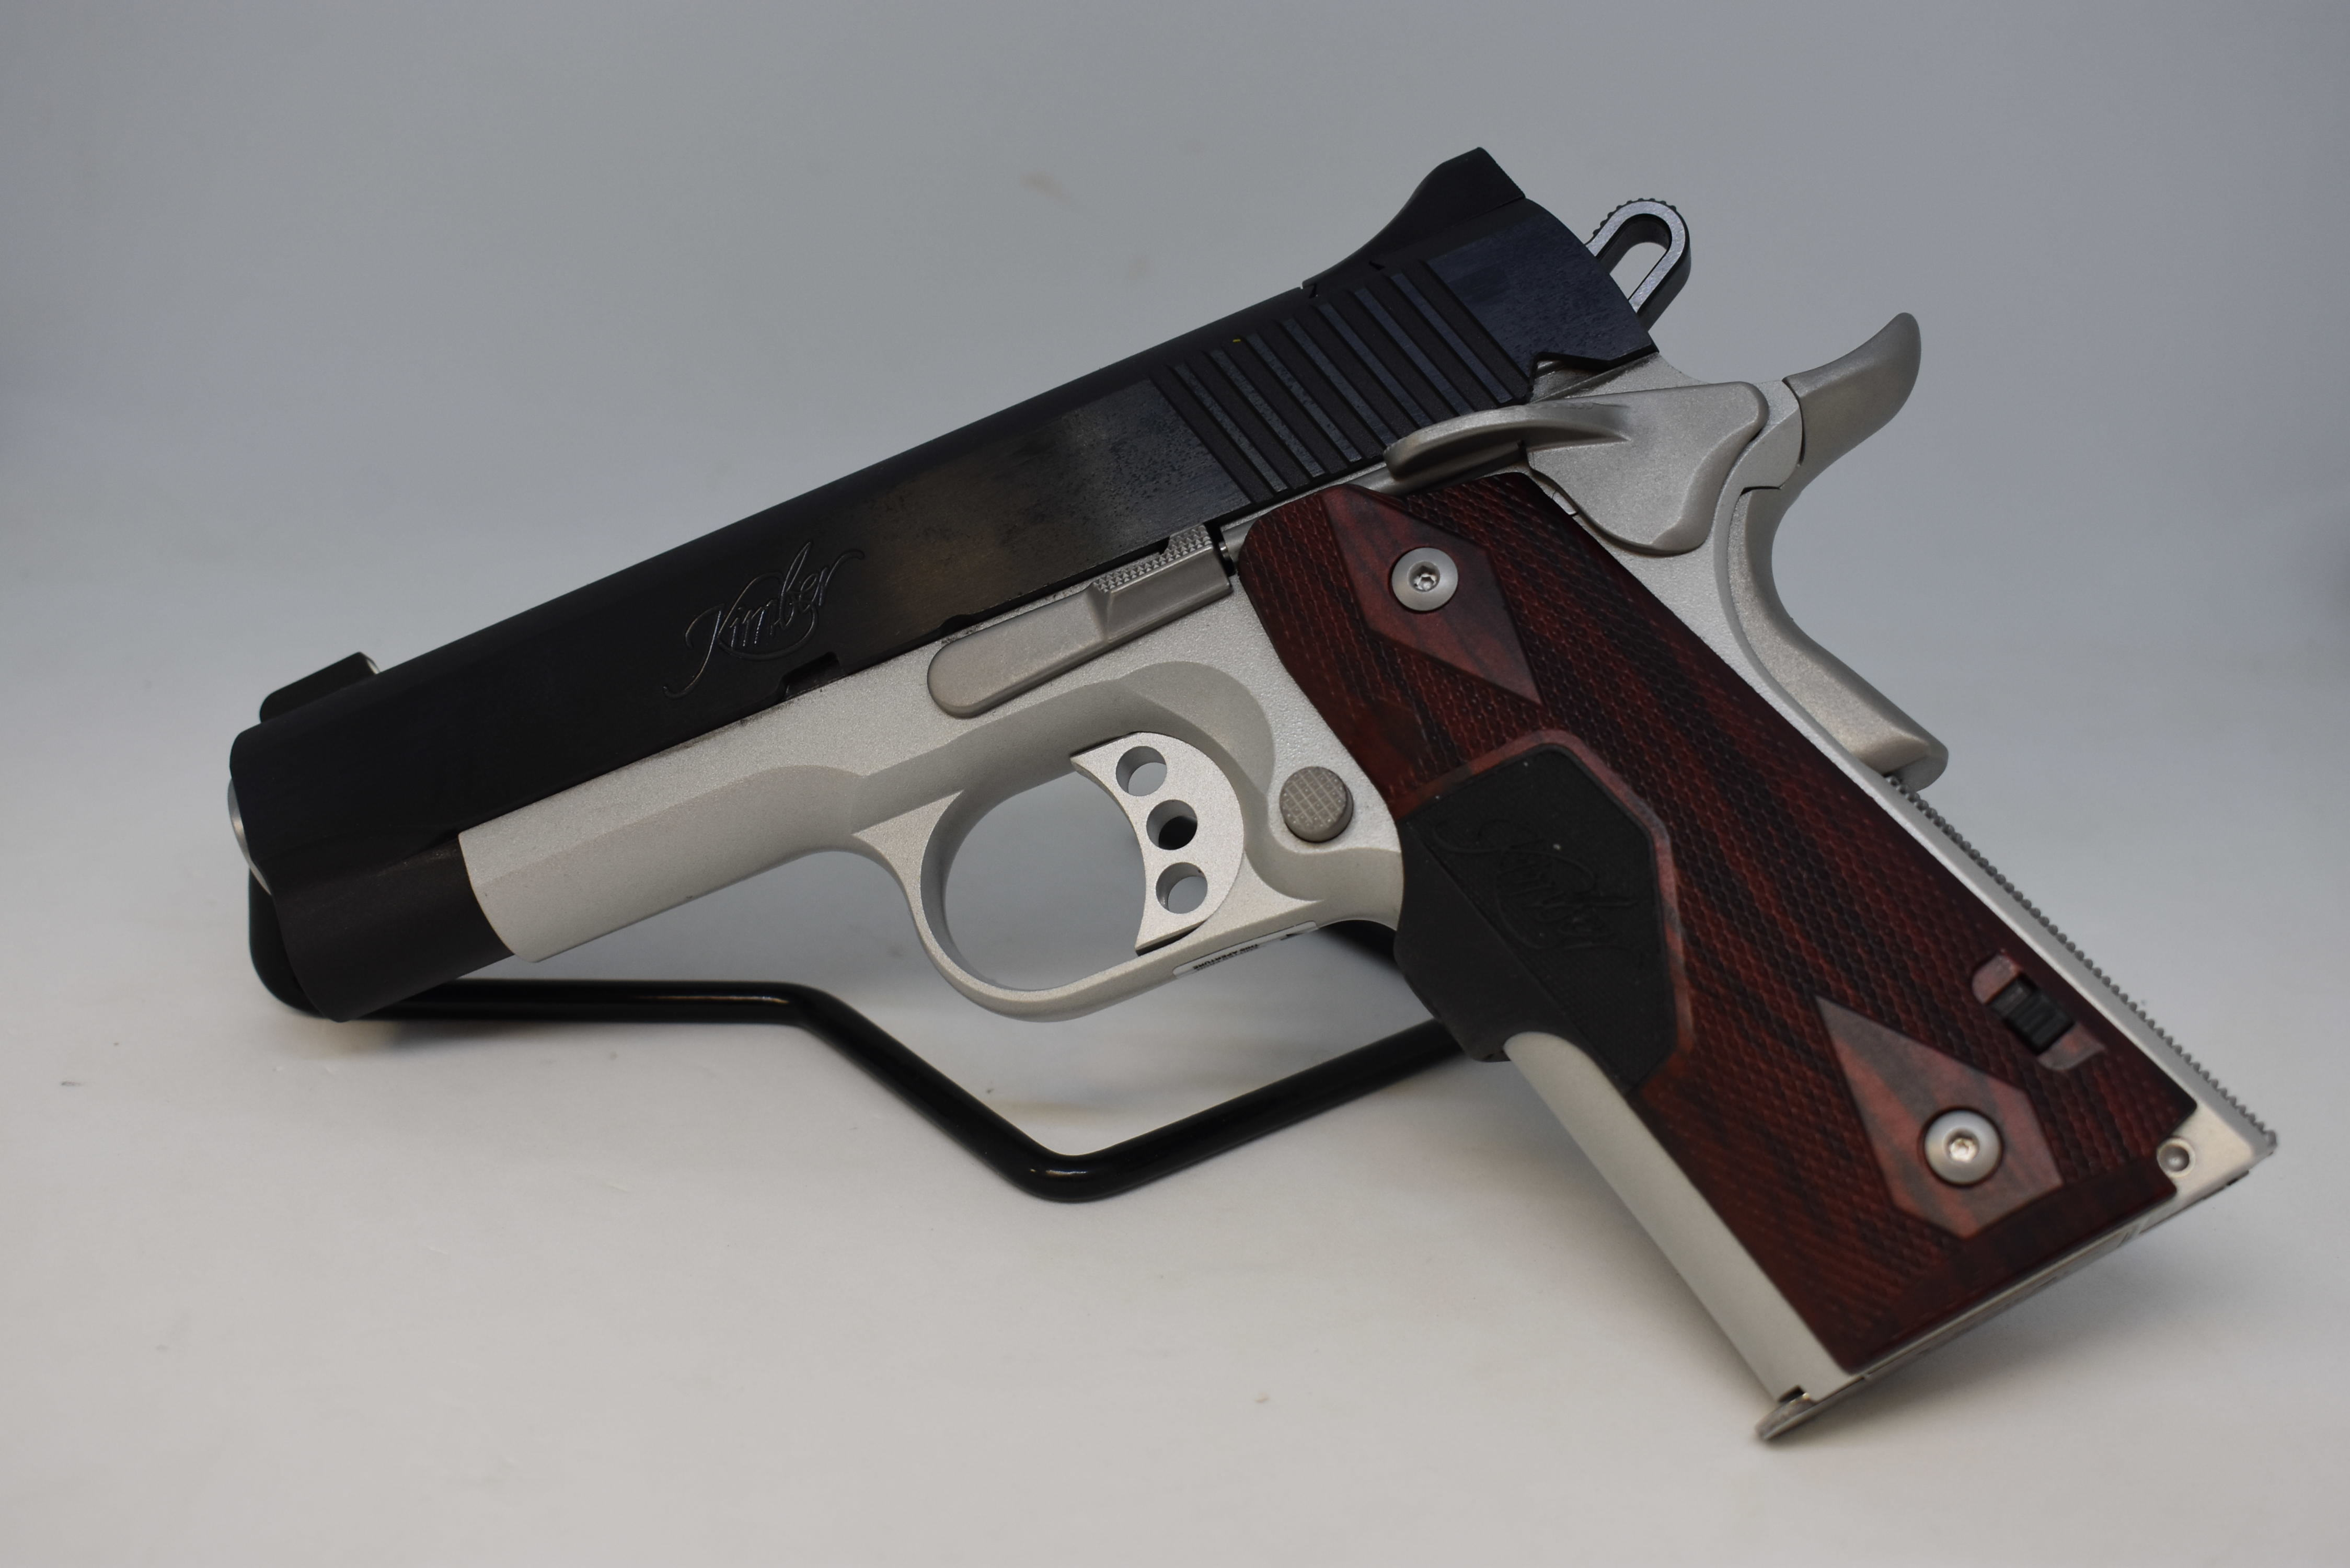 KIMBER - PRO CARRY II - PISTOL FIREARM SEMI AUTOMATIC